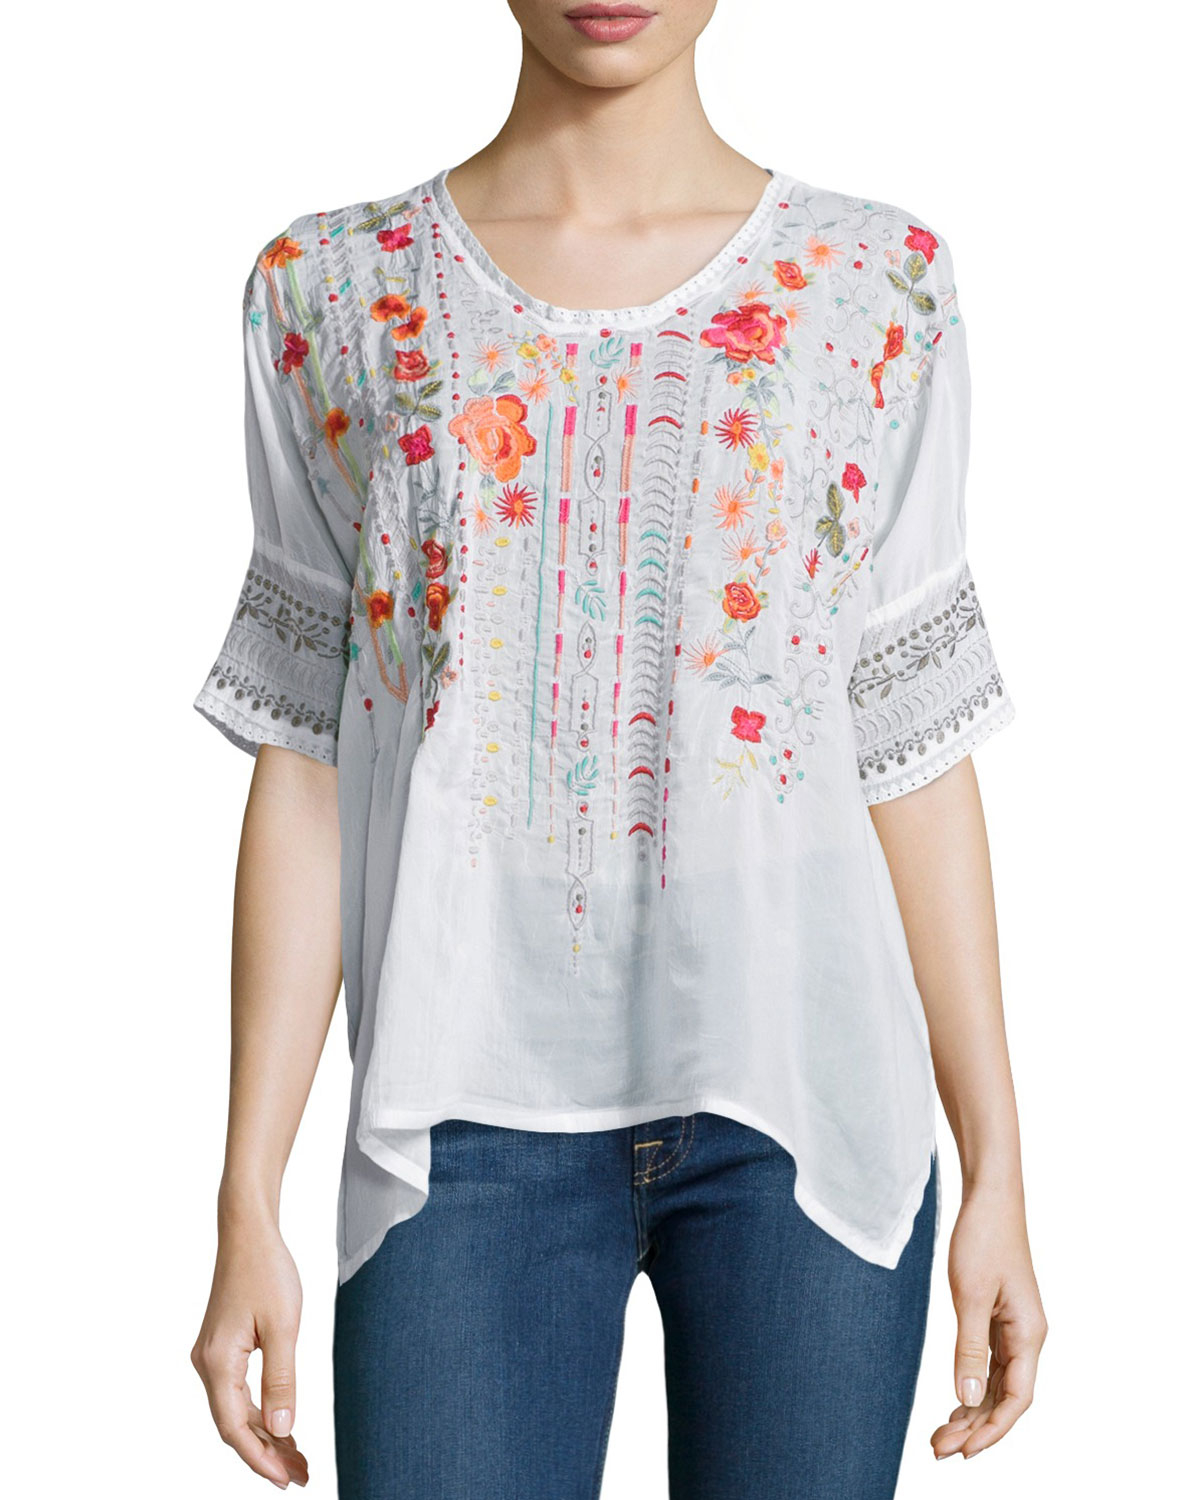 Find great deals on eBay for georgette blouse. Shop with confidence.